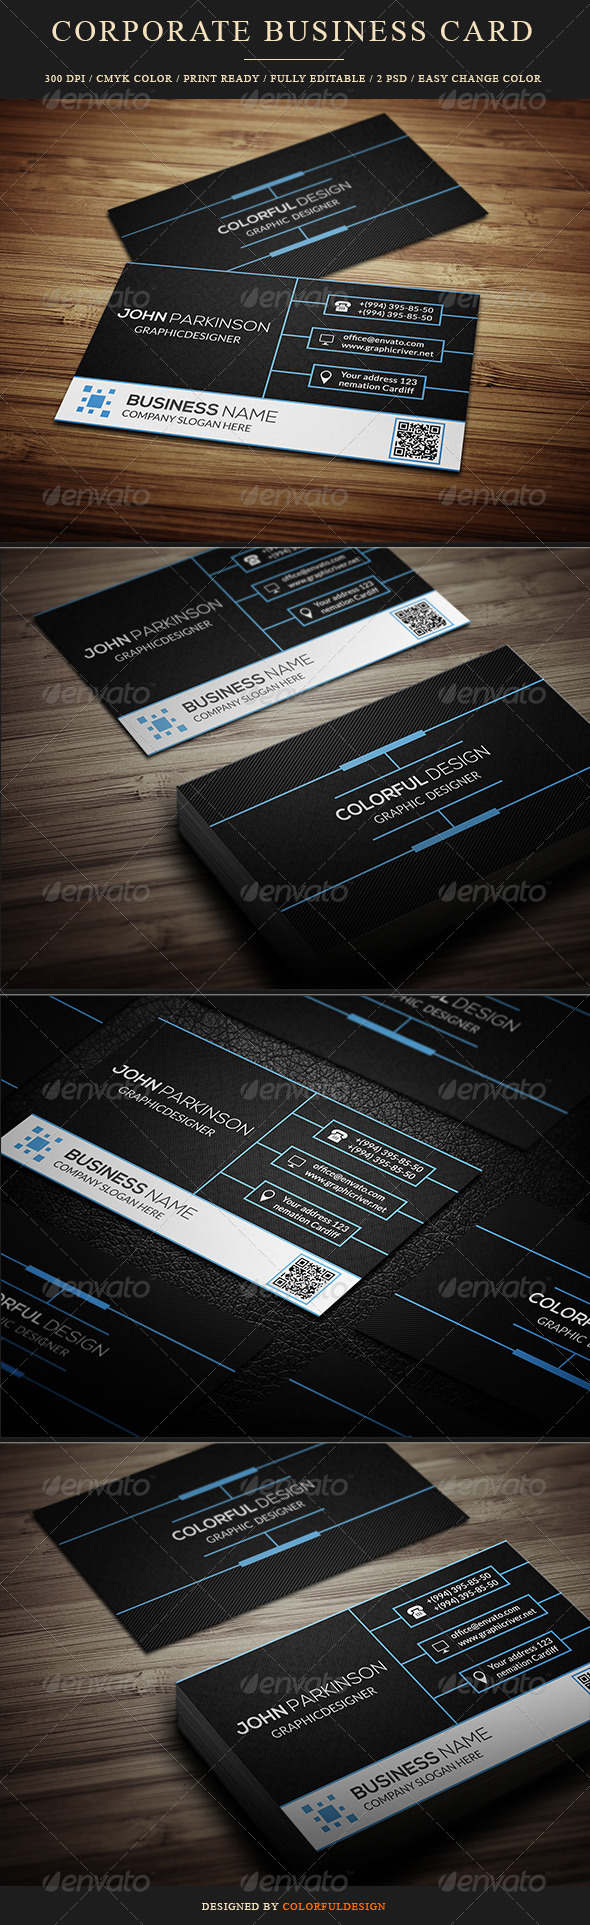 GraphicRiver Corporate Business Card 8545449